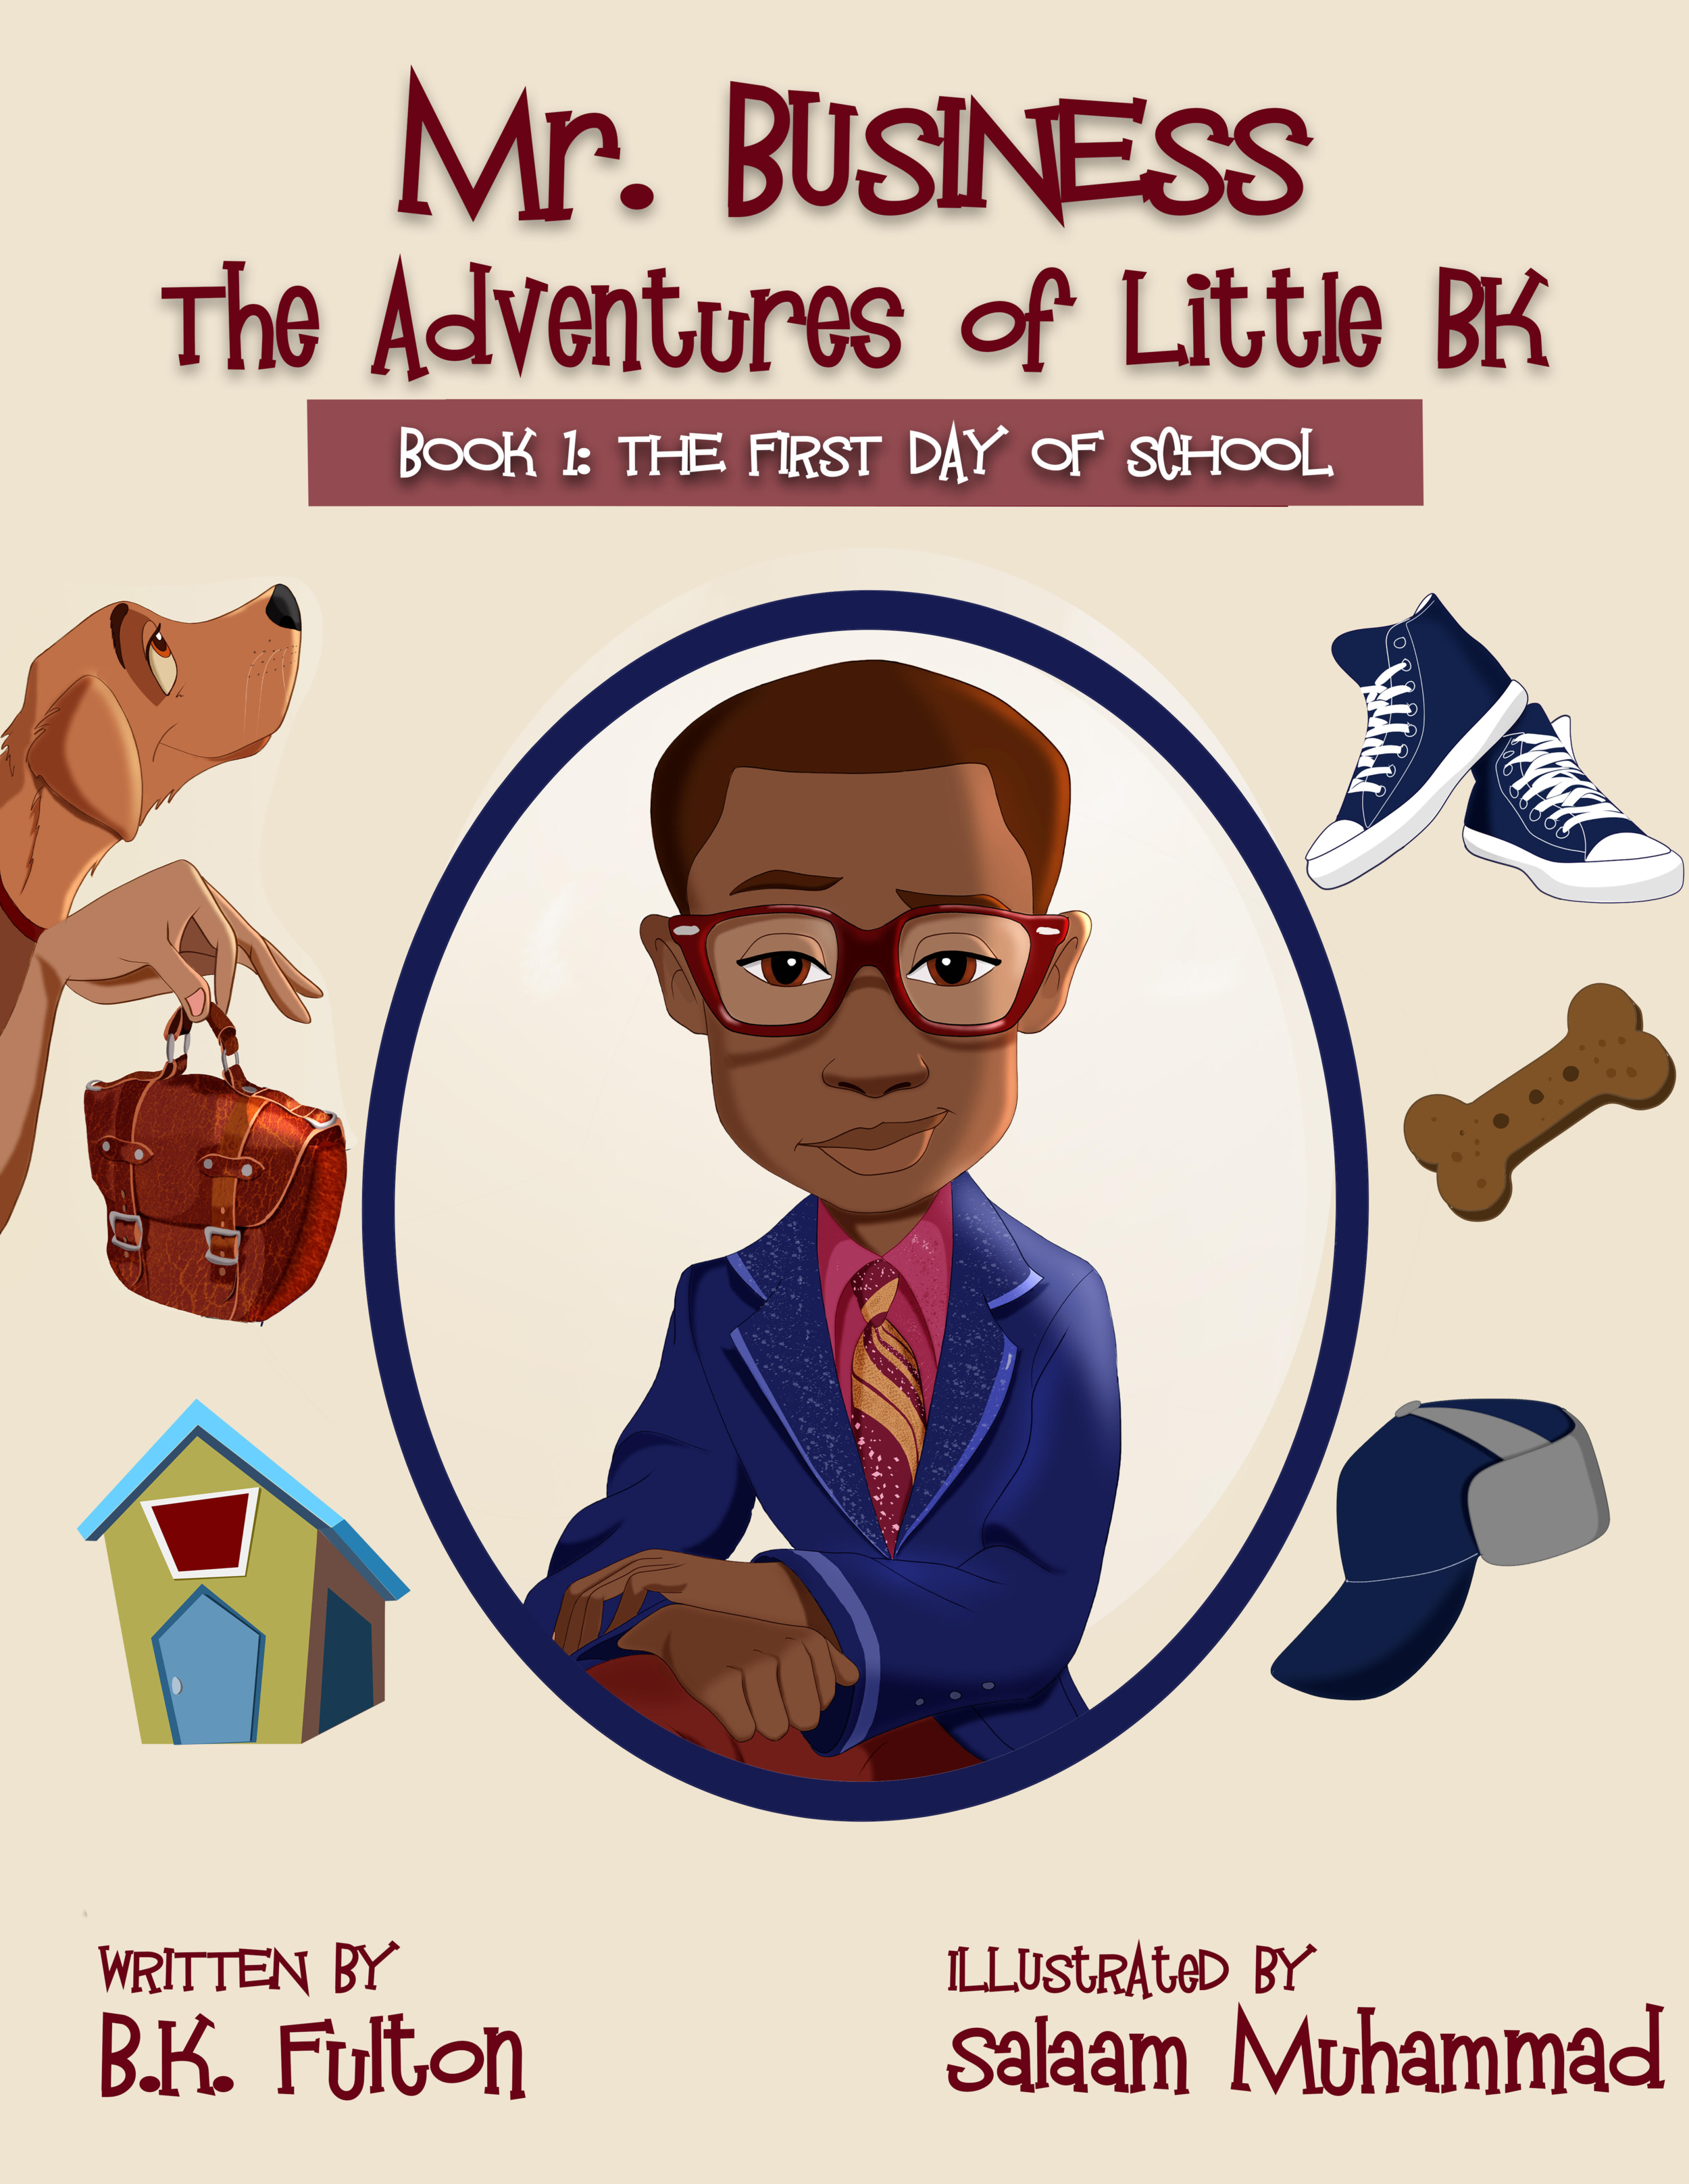 Mr. Business: Book 1 - Written by:BK FultonIllustrated by:Salaam MuhammadSYNOPSISMeet Mr. Business: third-grade student and business savvy entrepreneur! Follow BK around the neighborhood as he learns about life. In this adventure, BK gets chased home on his first day of school. He has to think fast and get help from a trusted friend just before the local bully can catch him. Children and parents alike love the values of this dynamic story and how it encourages children to be true to who they are.Download book 1 free Lesson Plan